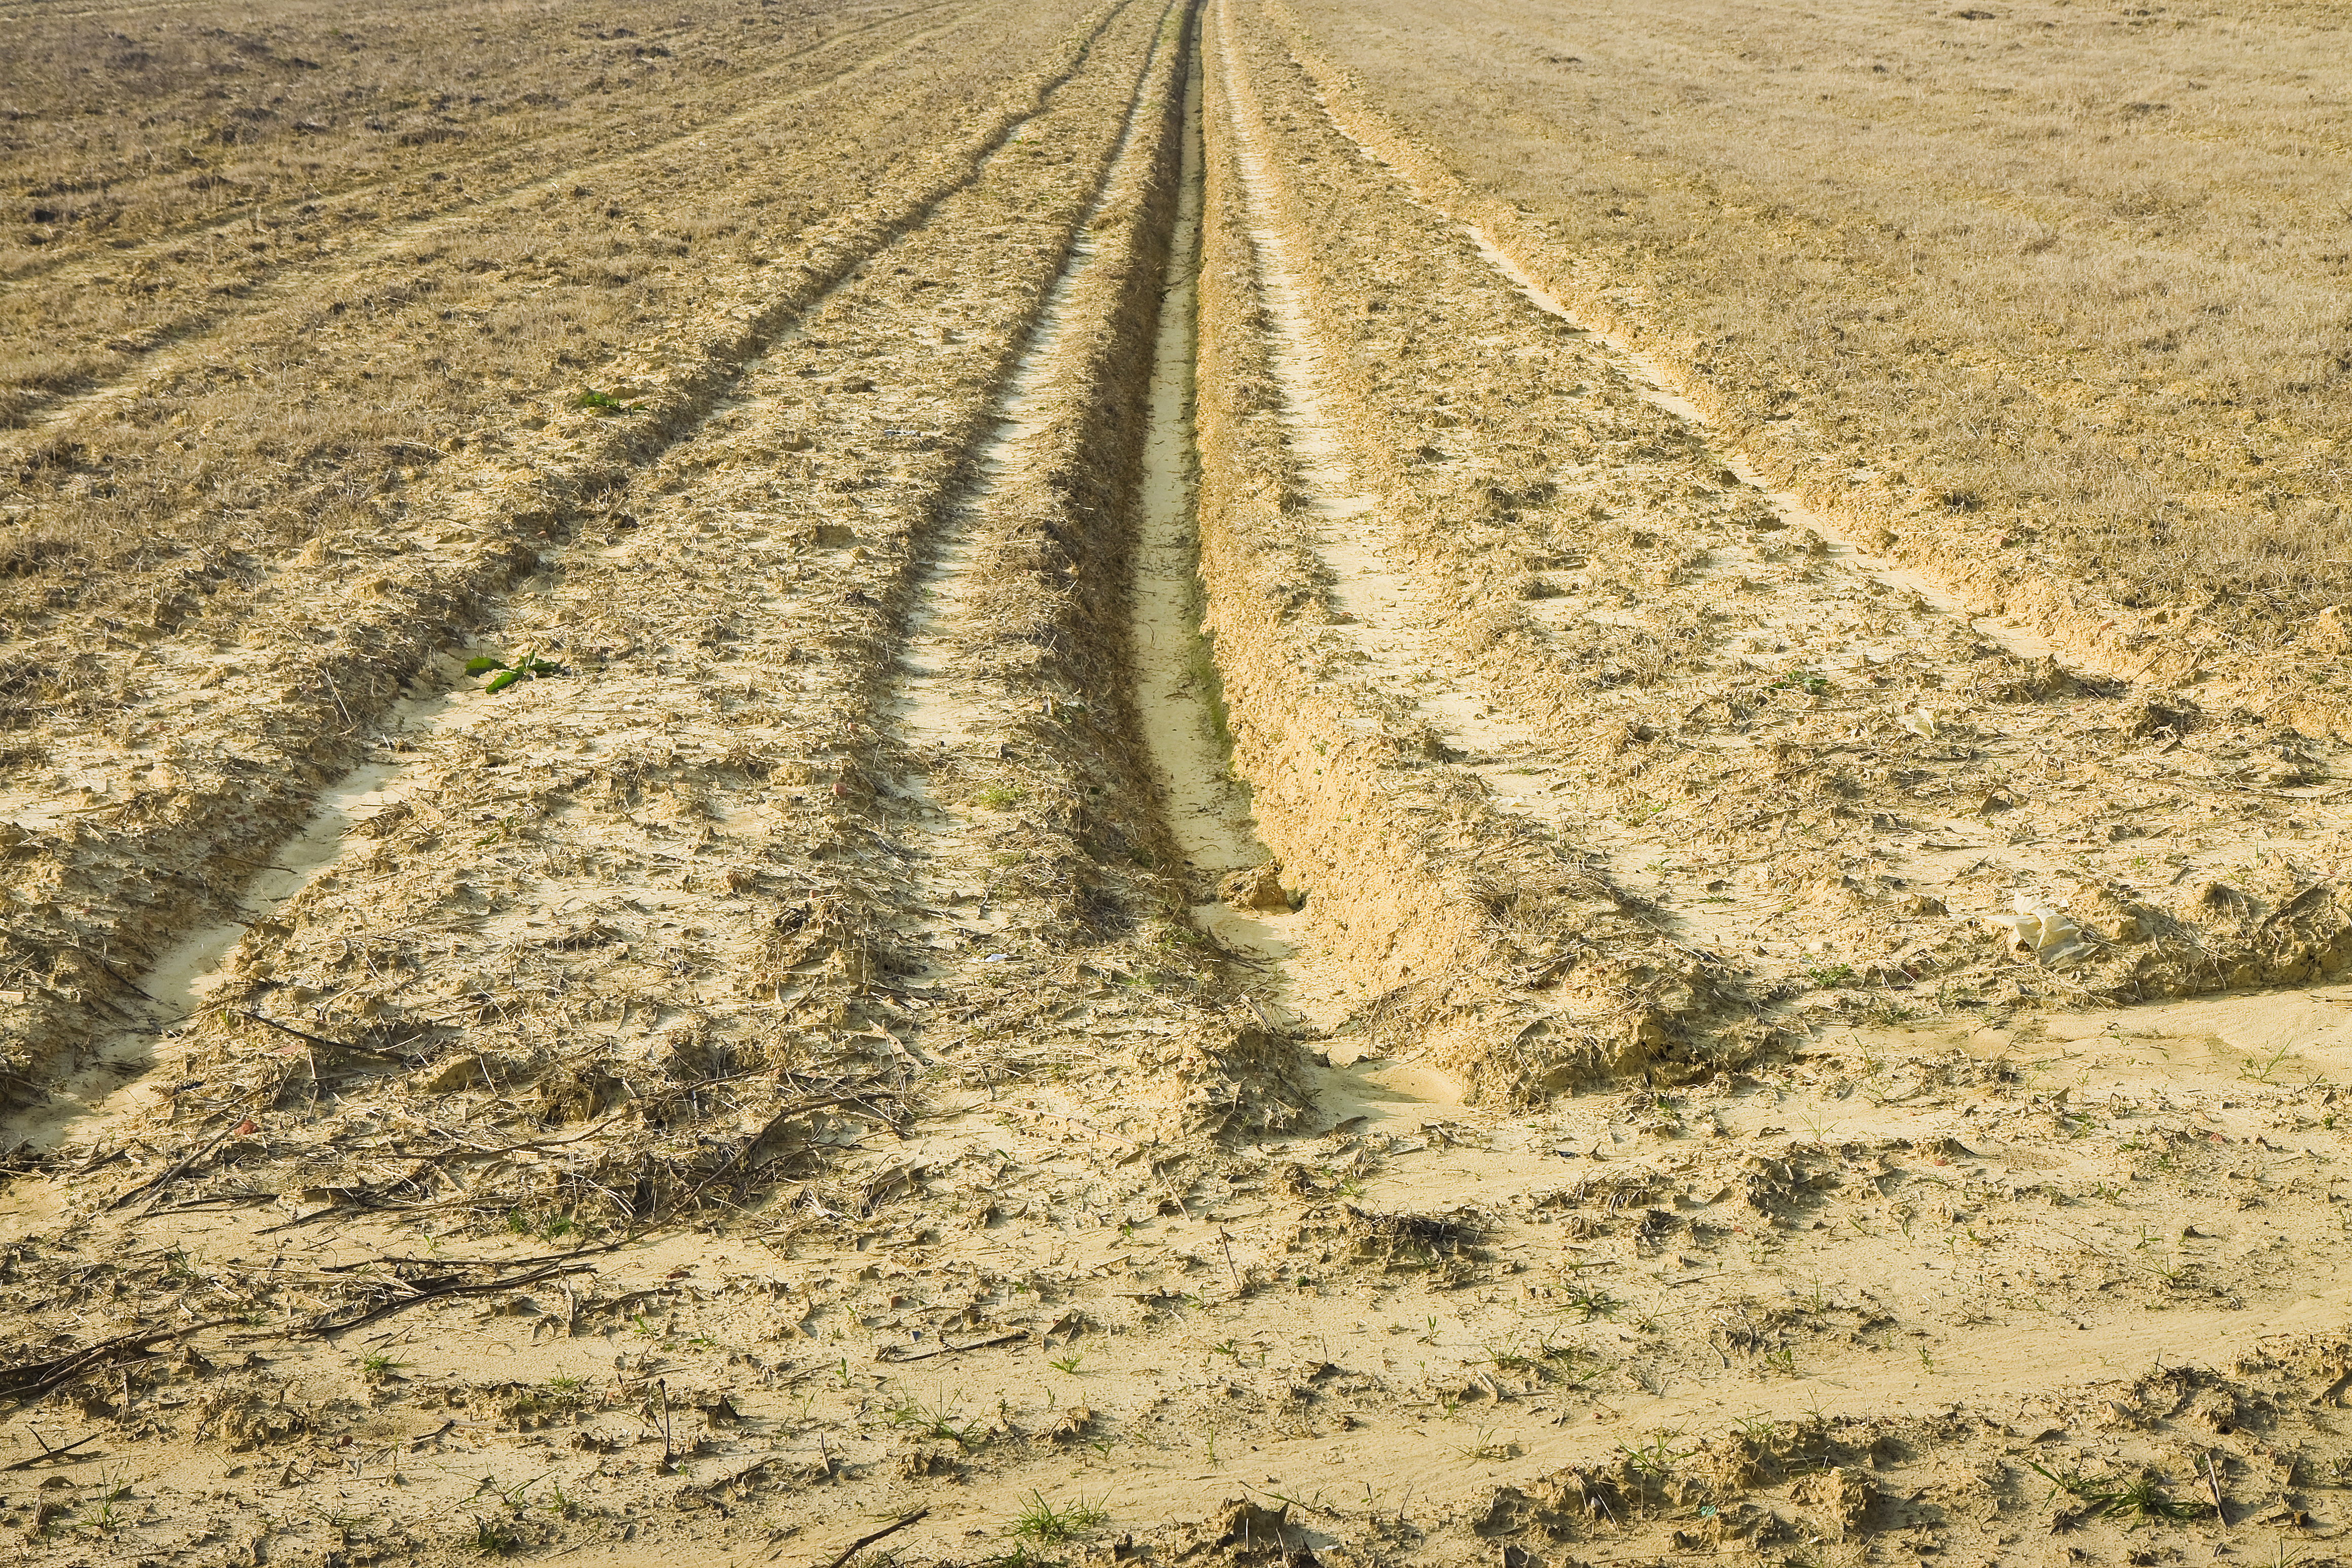 Ditch of rainwater collection in a plowed field - image with copy space